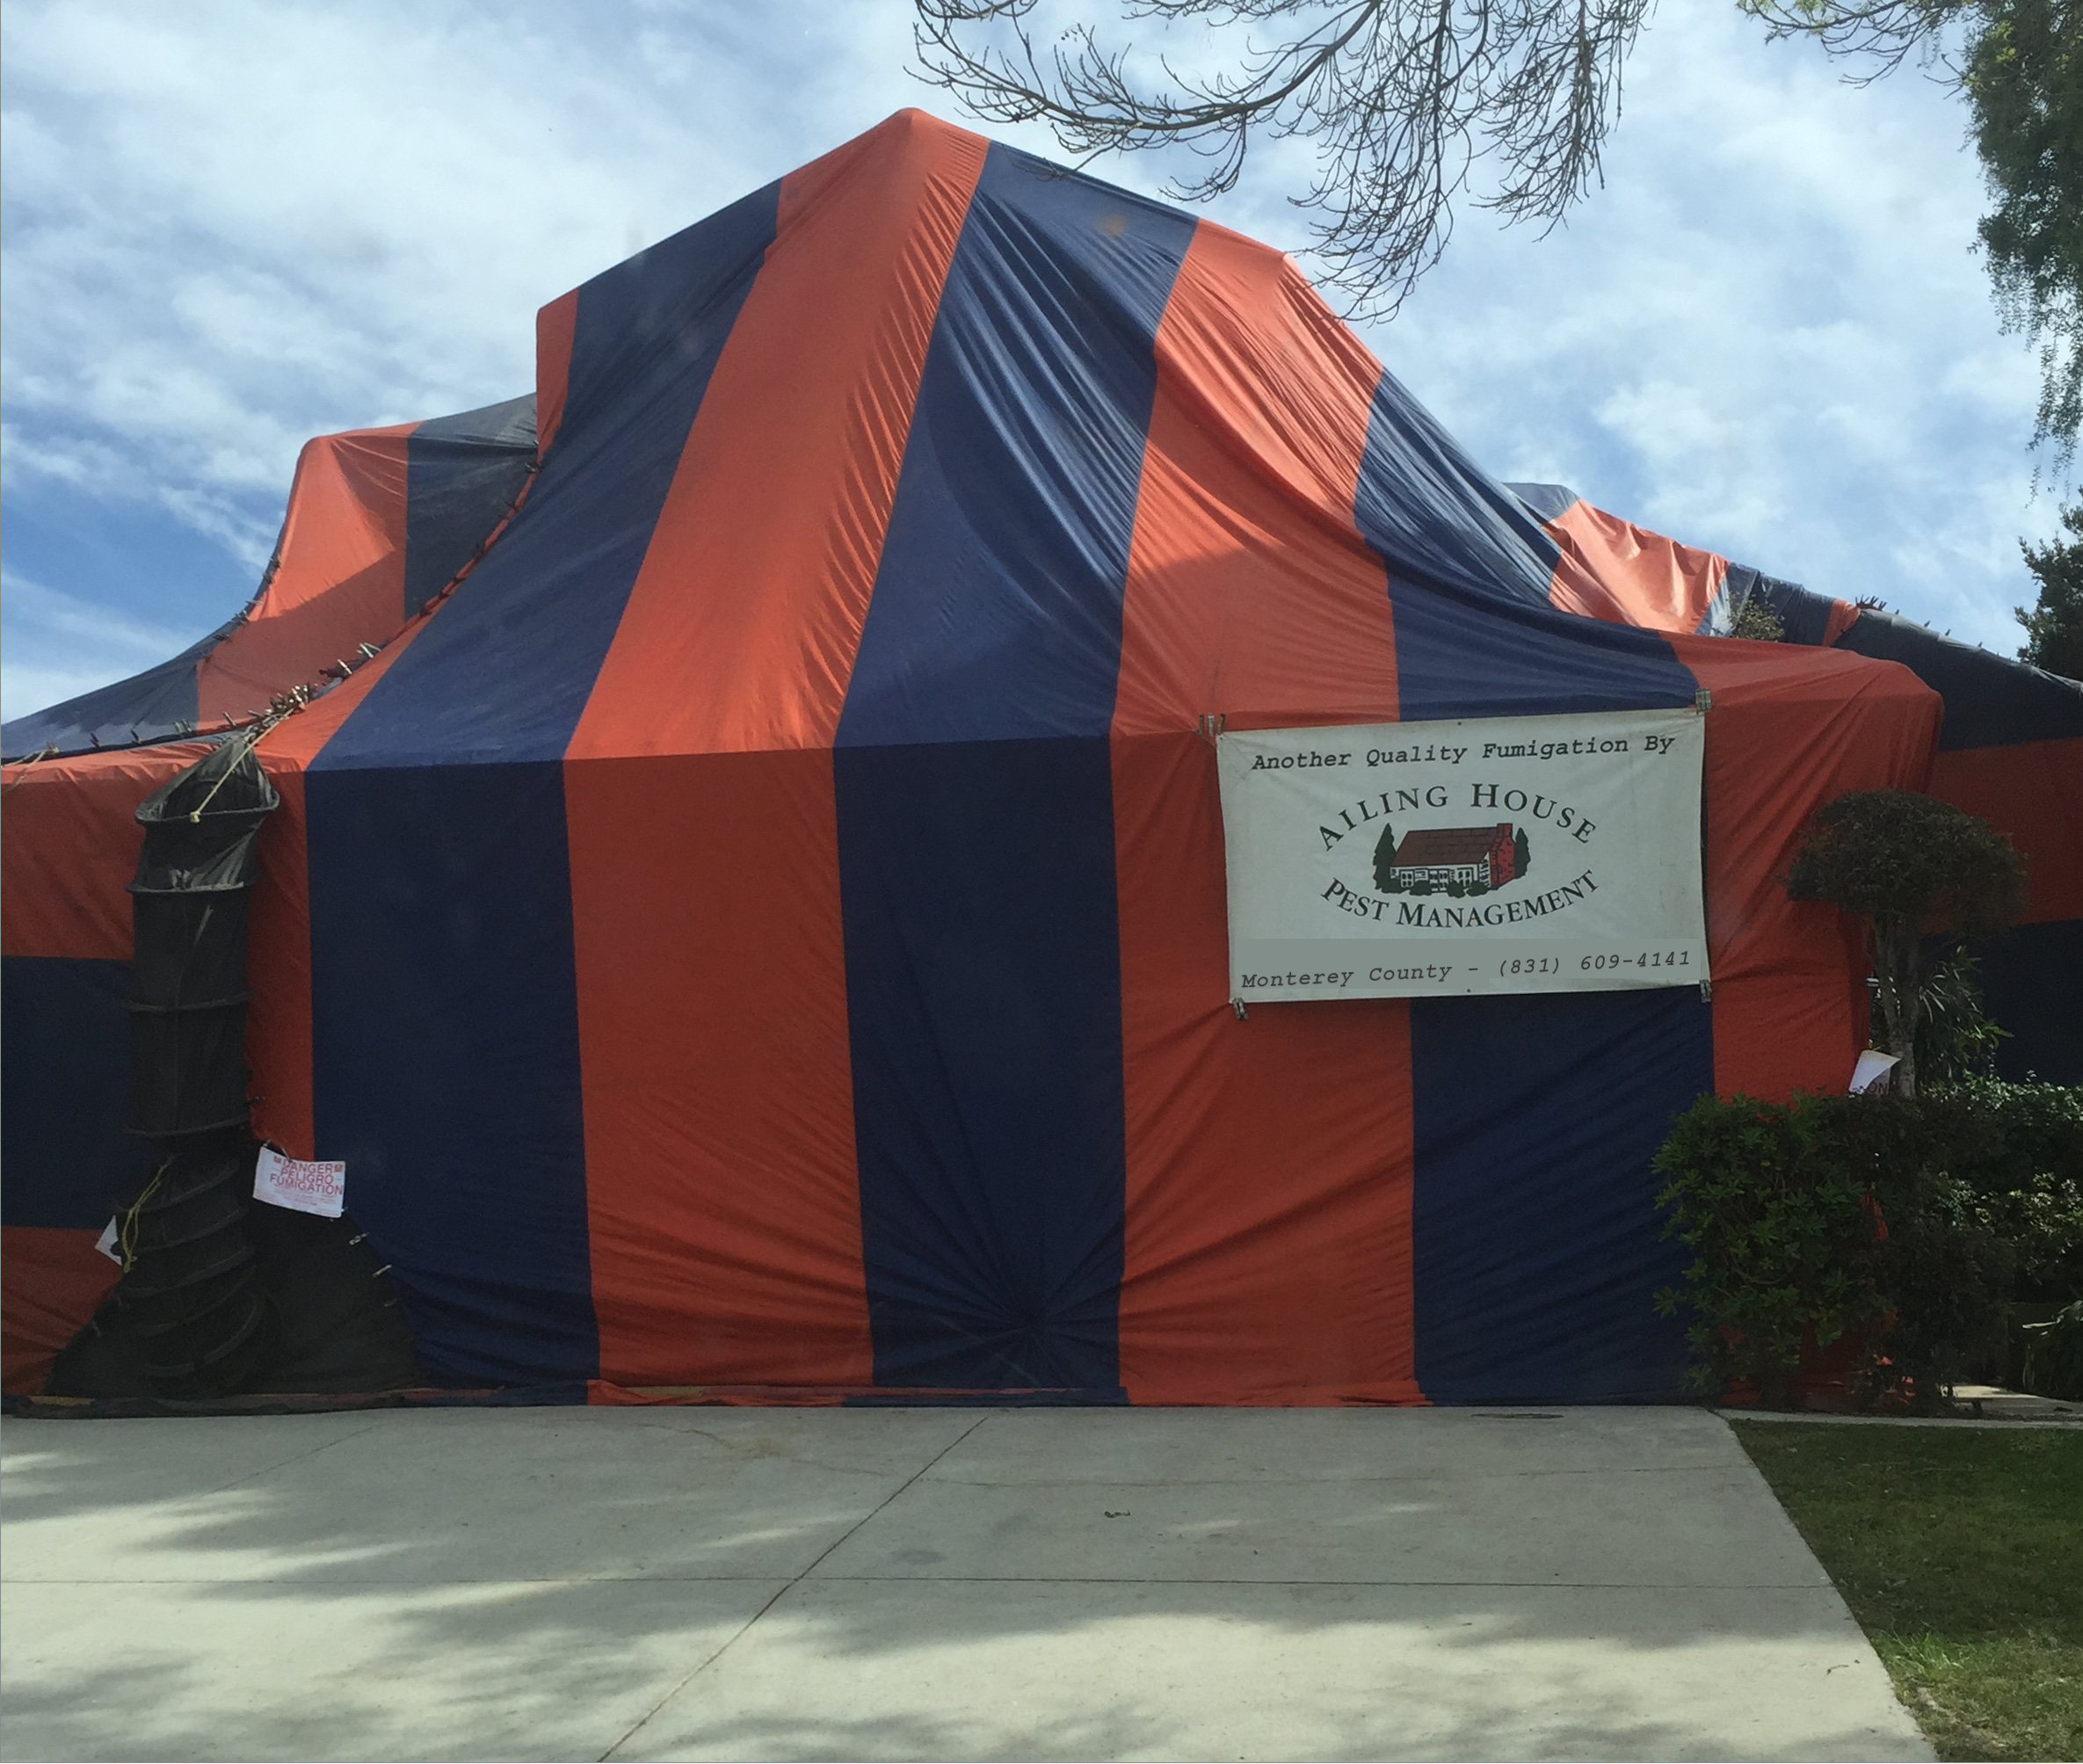 Tenting House for Termites u2013 Low Cost Termite Fumigation Treatment - All Monterey County - Santa Clara County CA | Ailing House Pest Management Inc. & Tenting House for Termites u2013 Low Cost Termite Fumigation Treatment ...